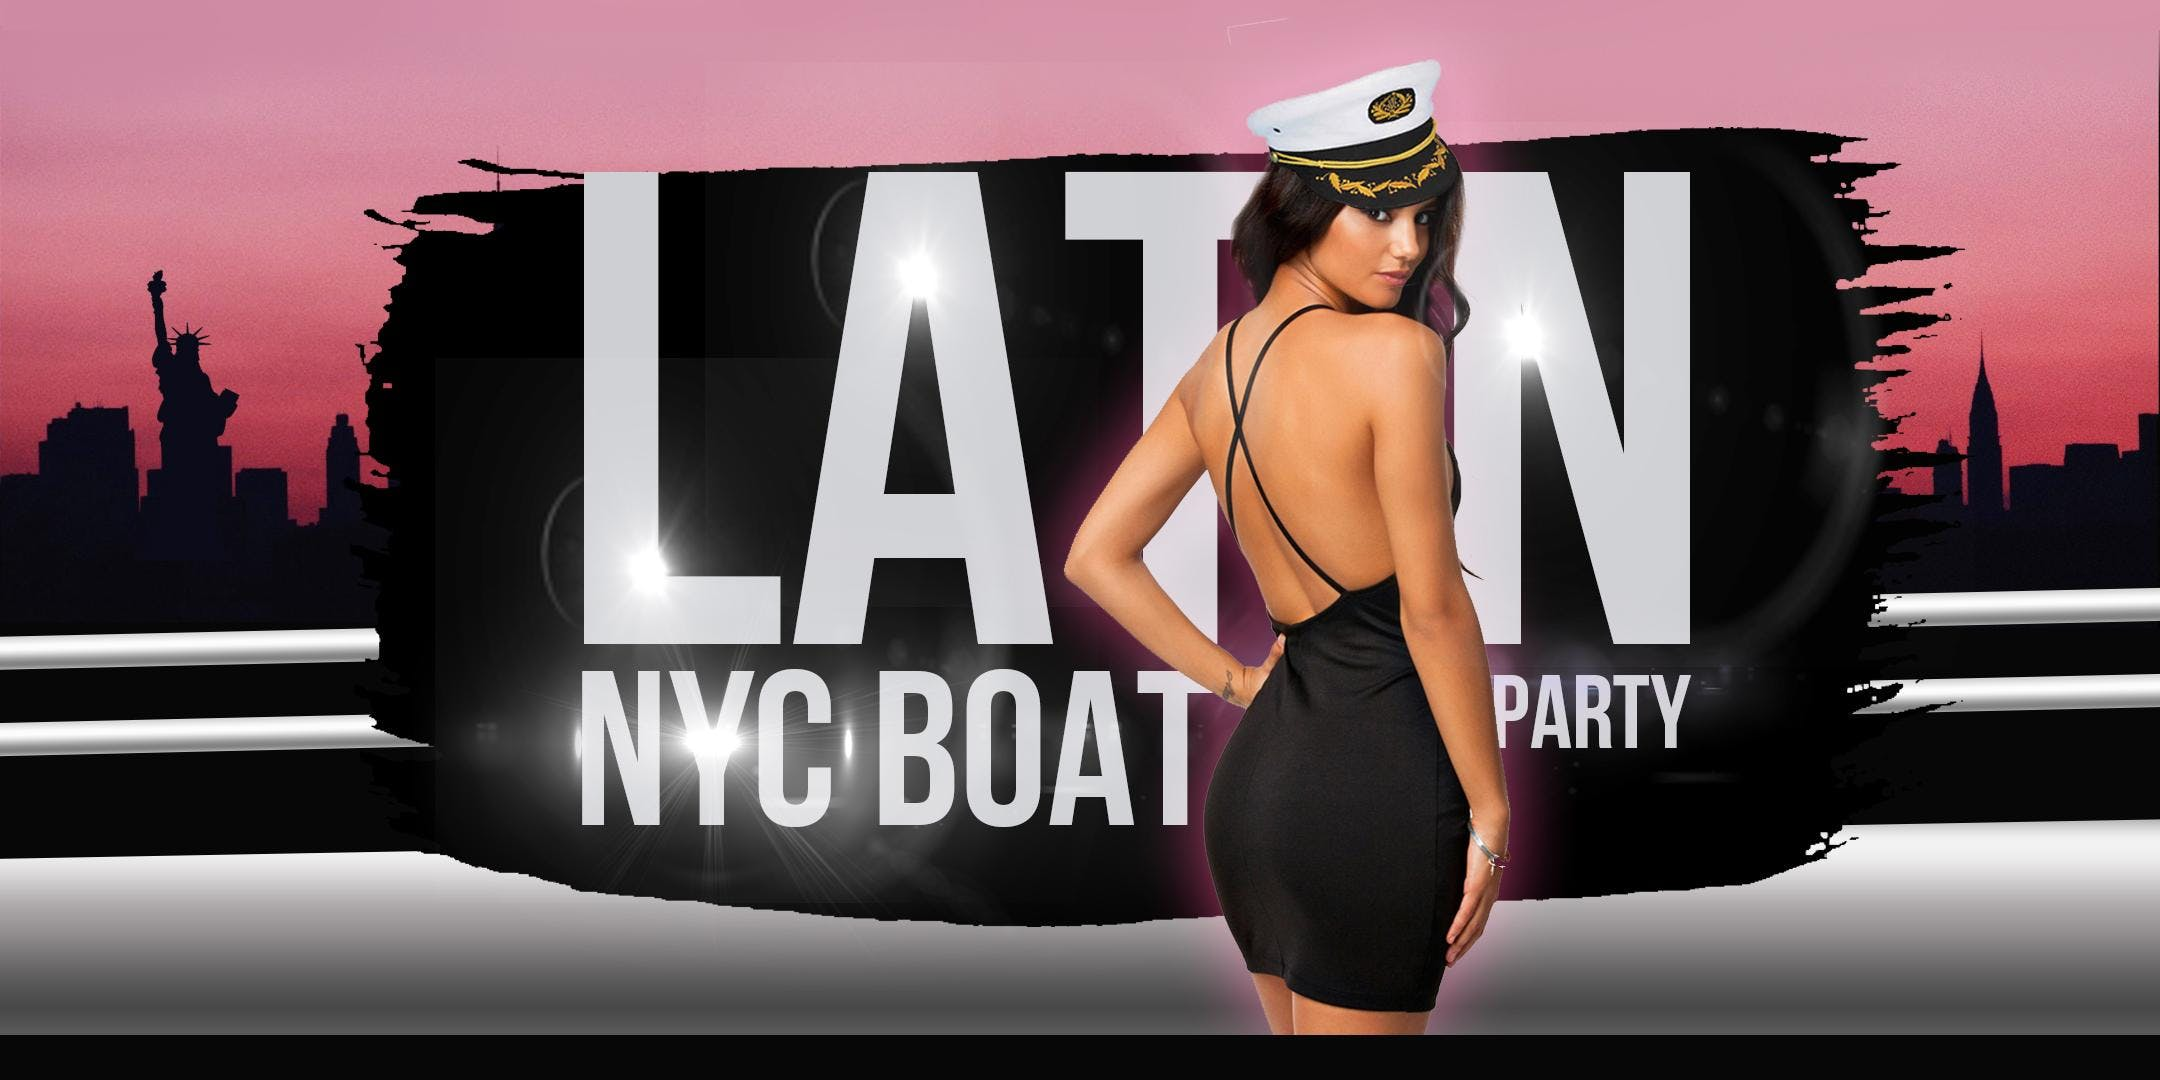 NYC #1 Official LATINA Boat Party Manhattan Yacht Cruise